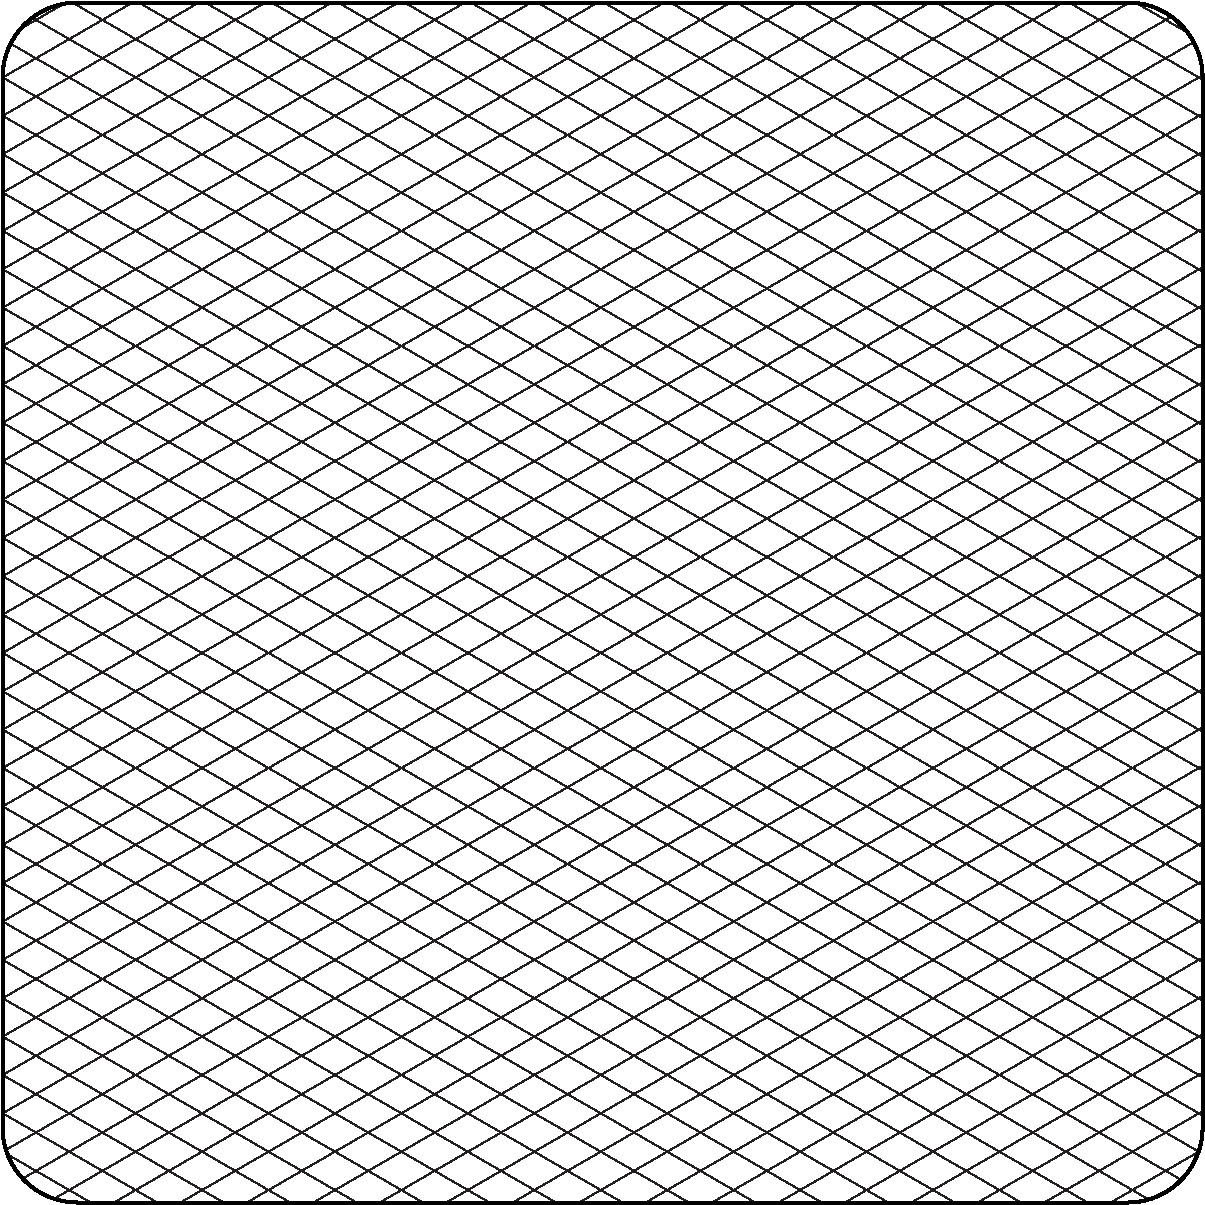 Isometric grid png. Download hd graph paper